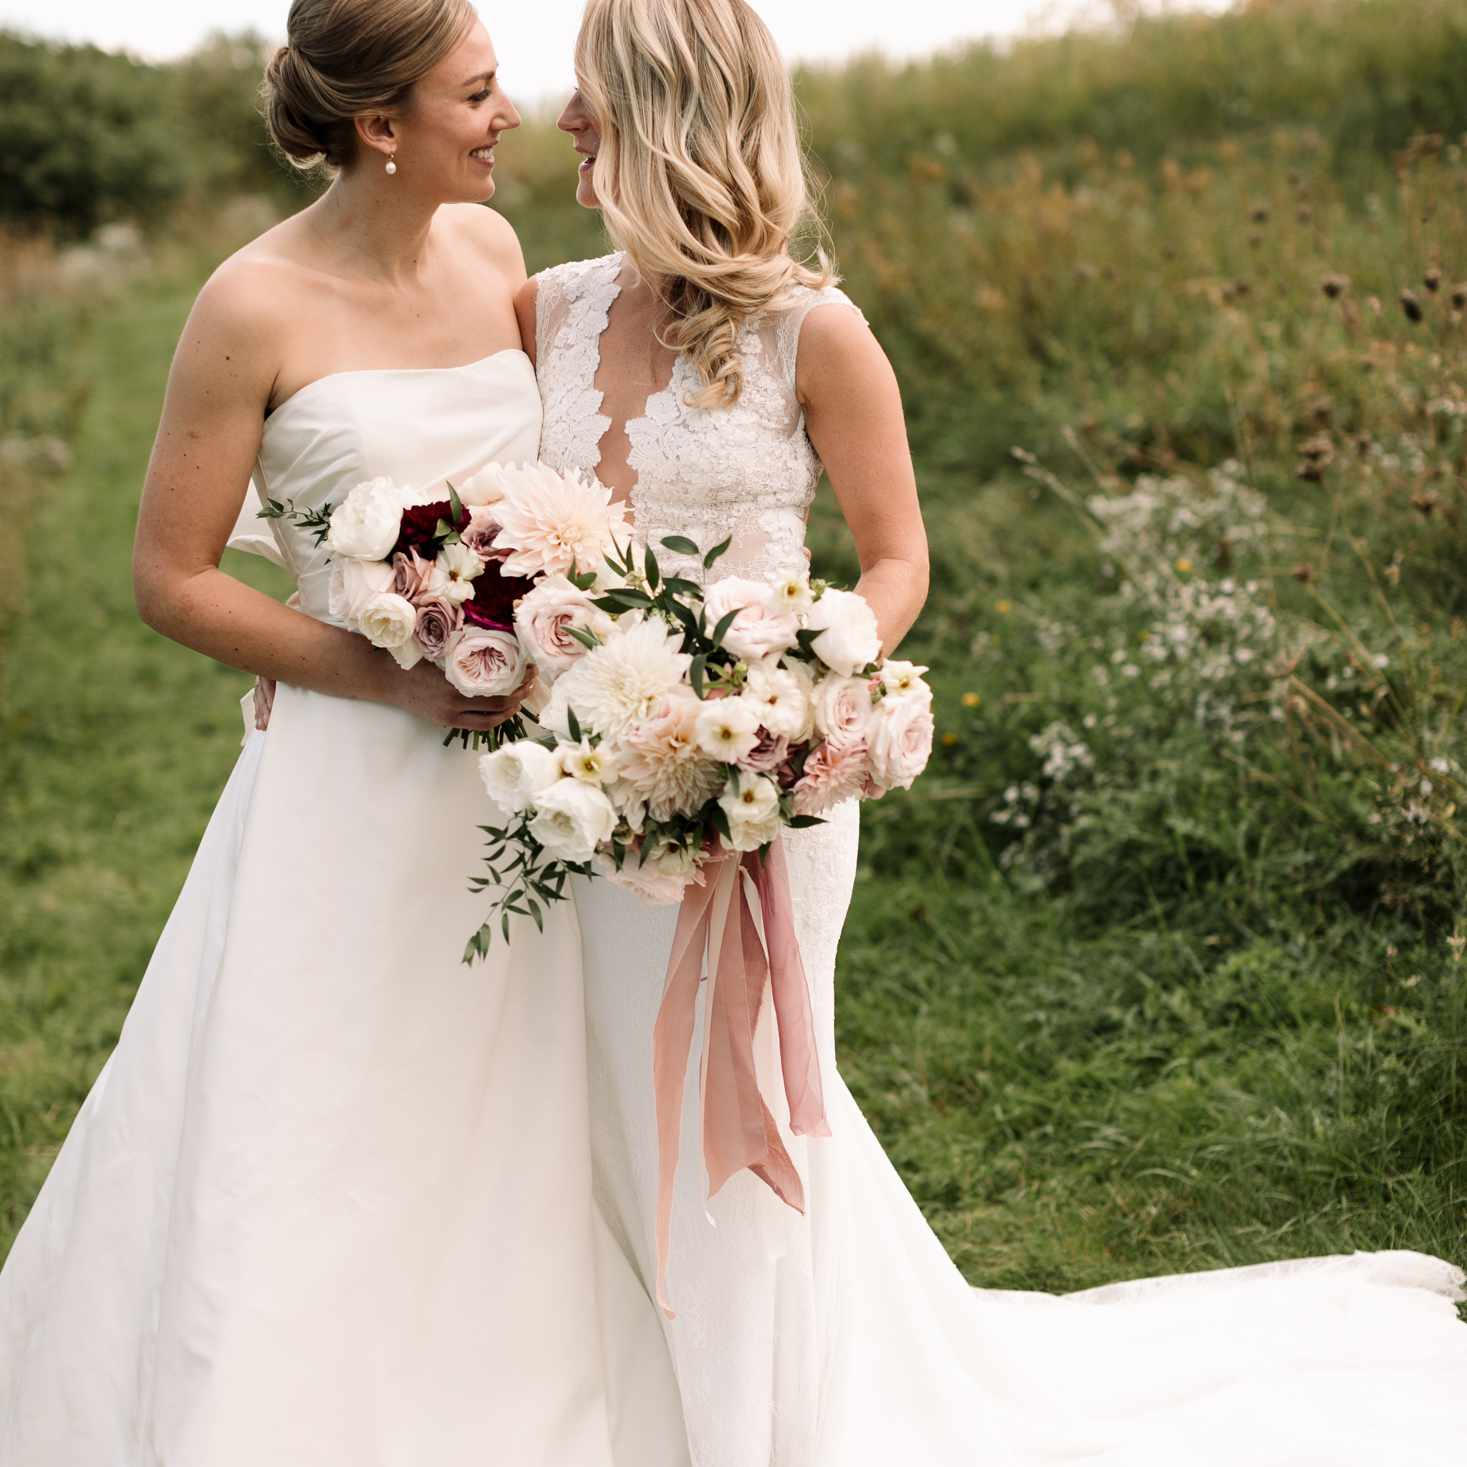 Matching bridal bouquets filled with dahlias and roses